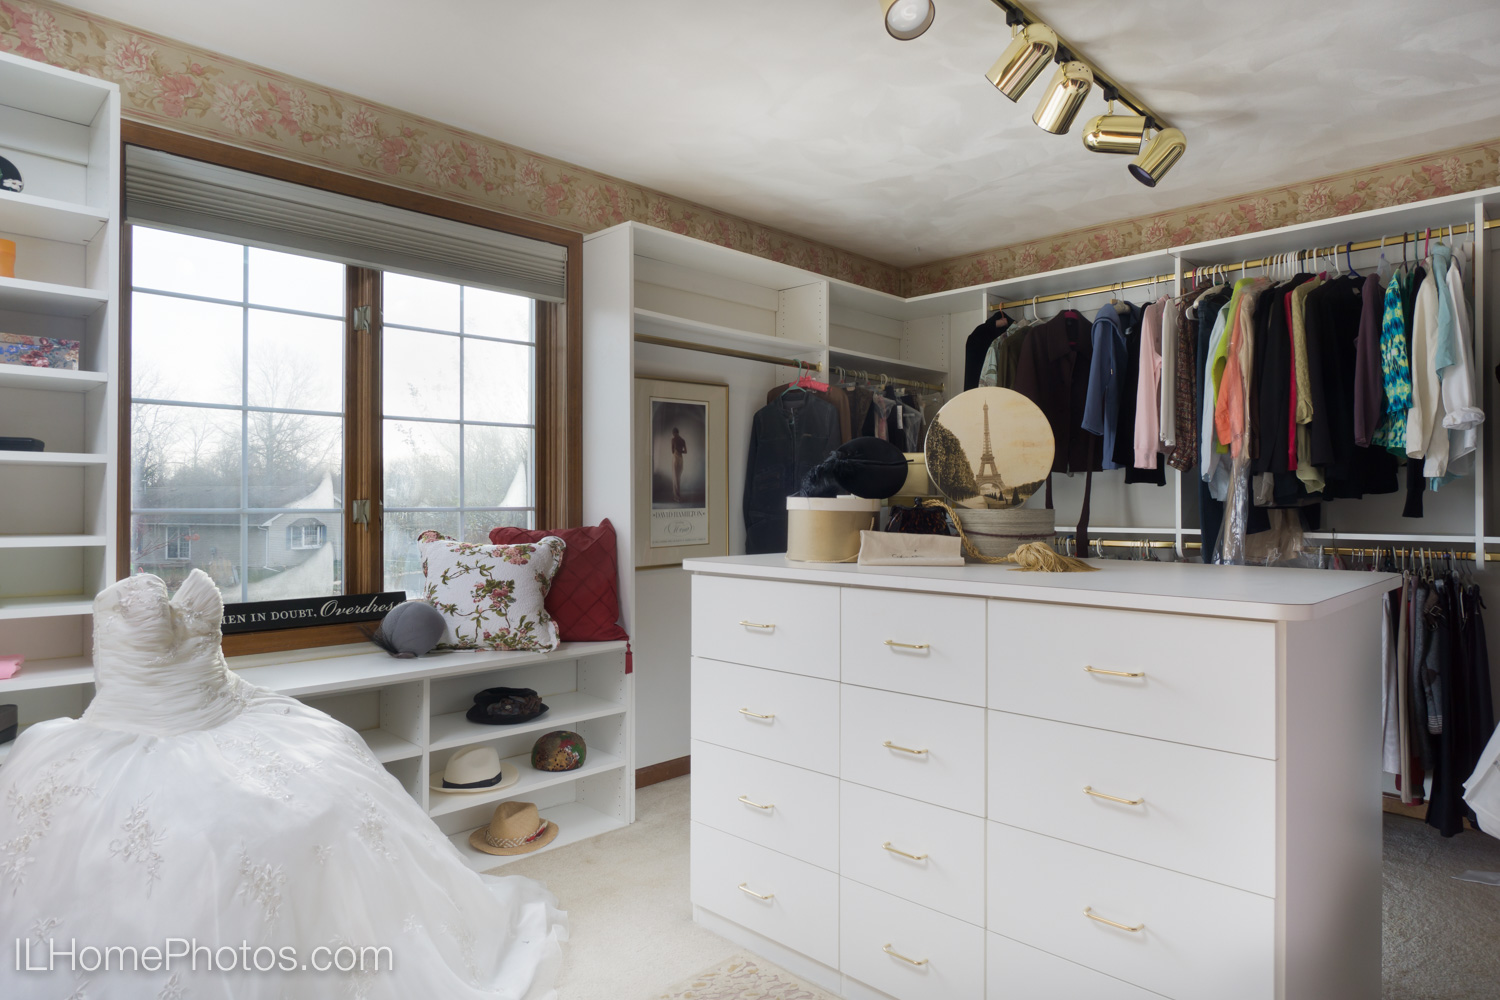 Interior walk-in closet photograph for real estate in Dunlap, IL :: Illinois Home Photography by Michael Gowin, Lincoln, IL